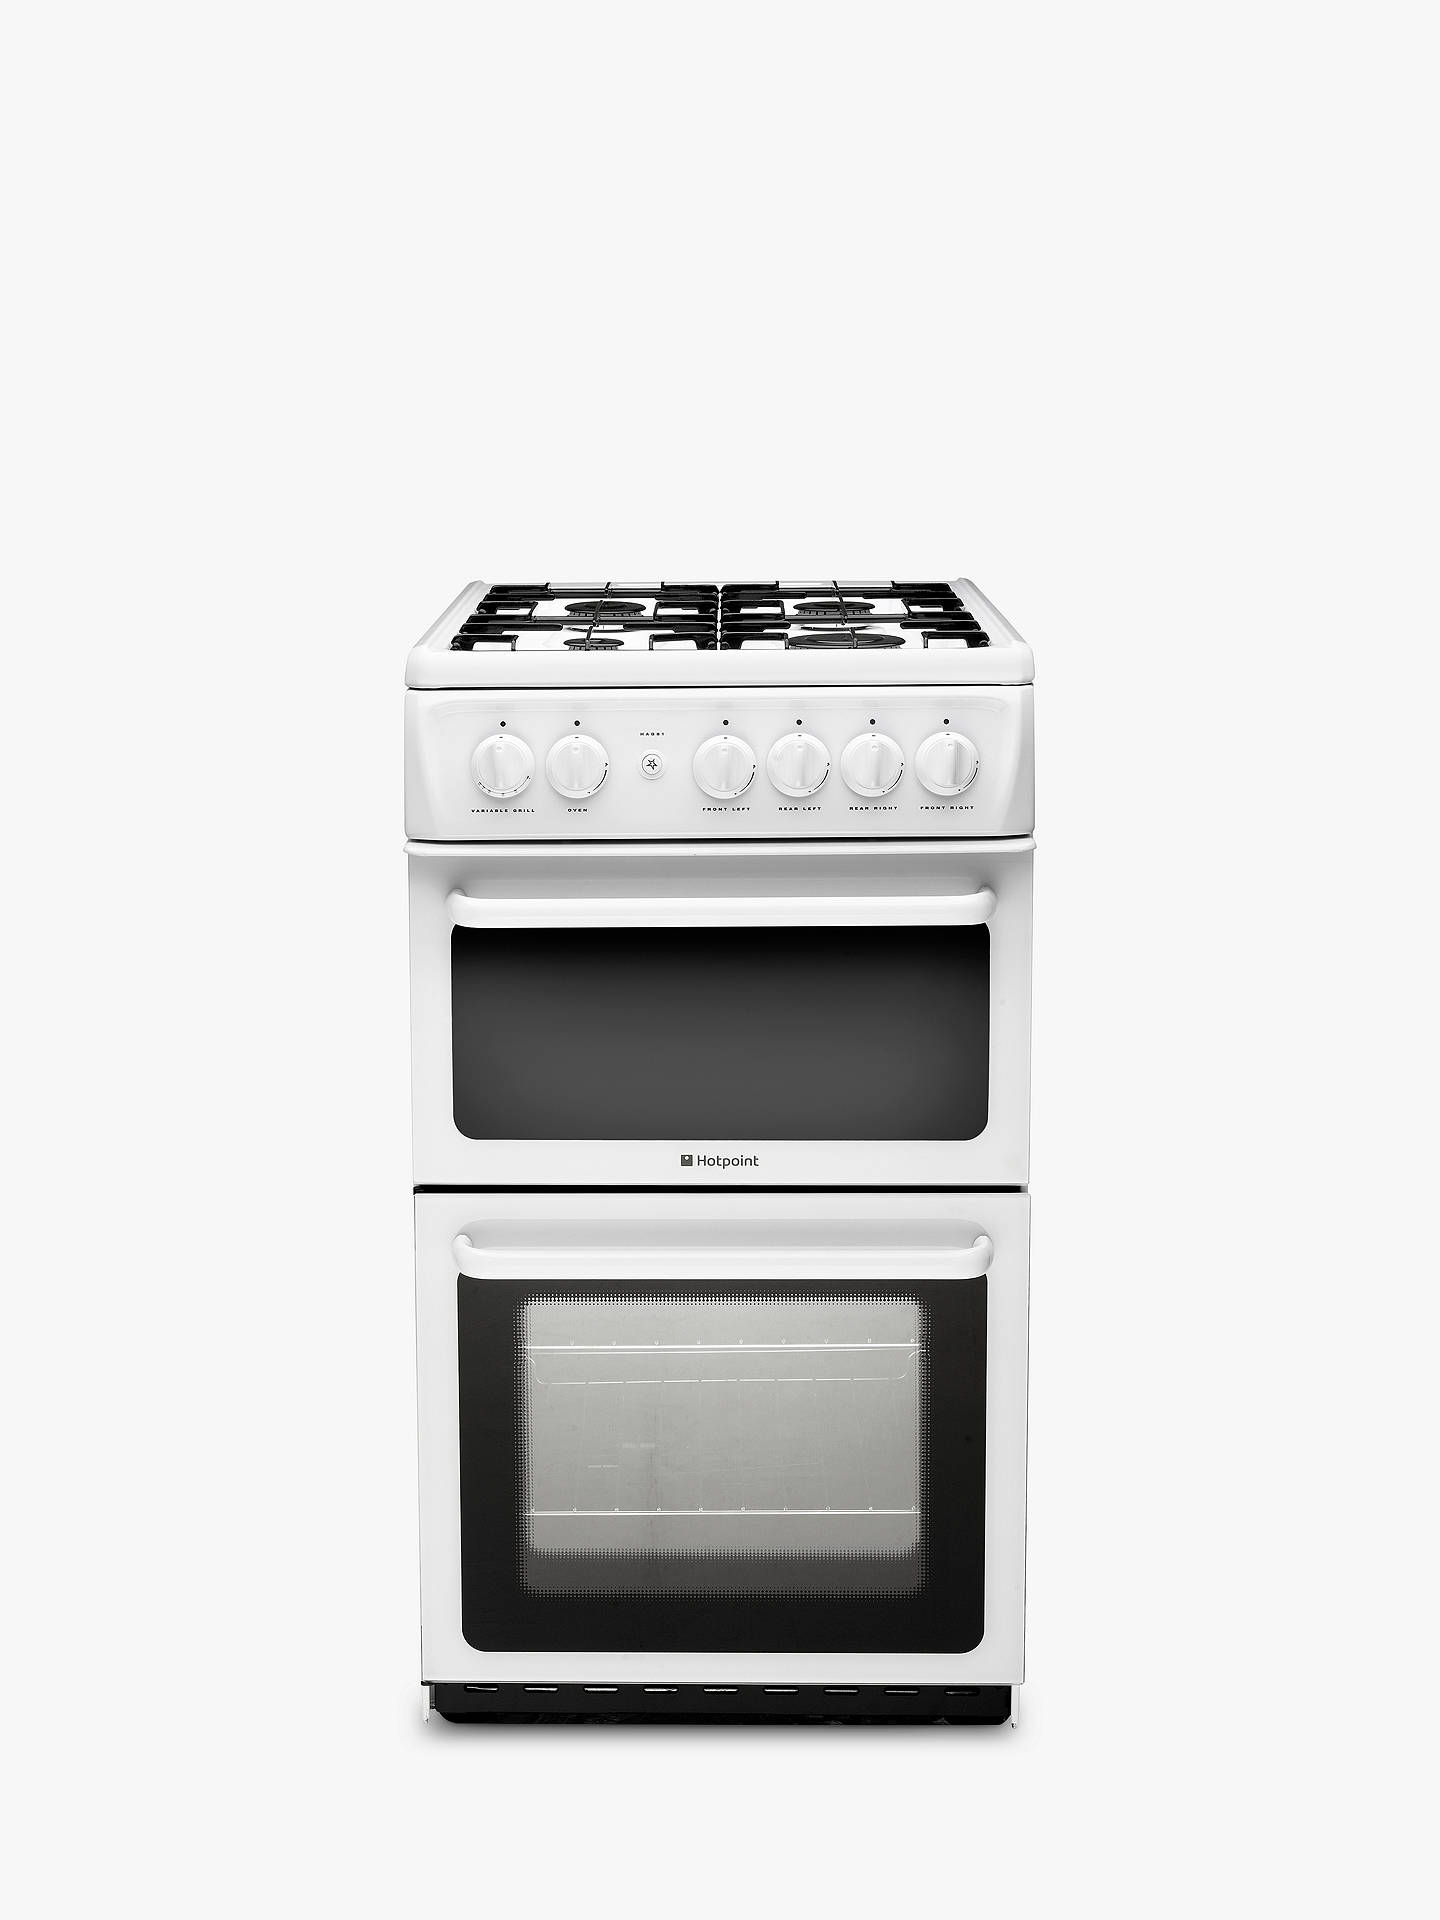 Independent gas ovens: overview, specifications, reviews